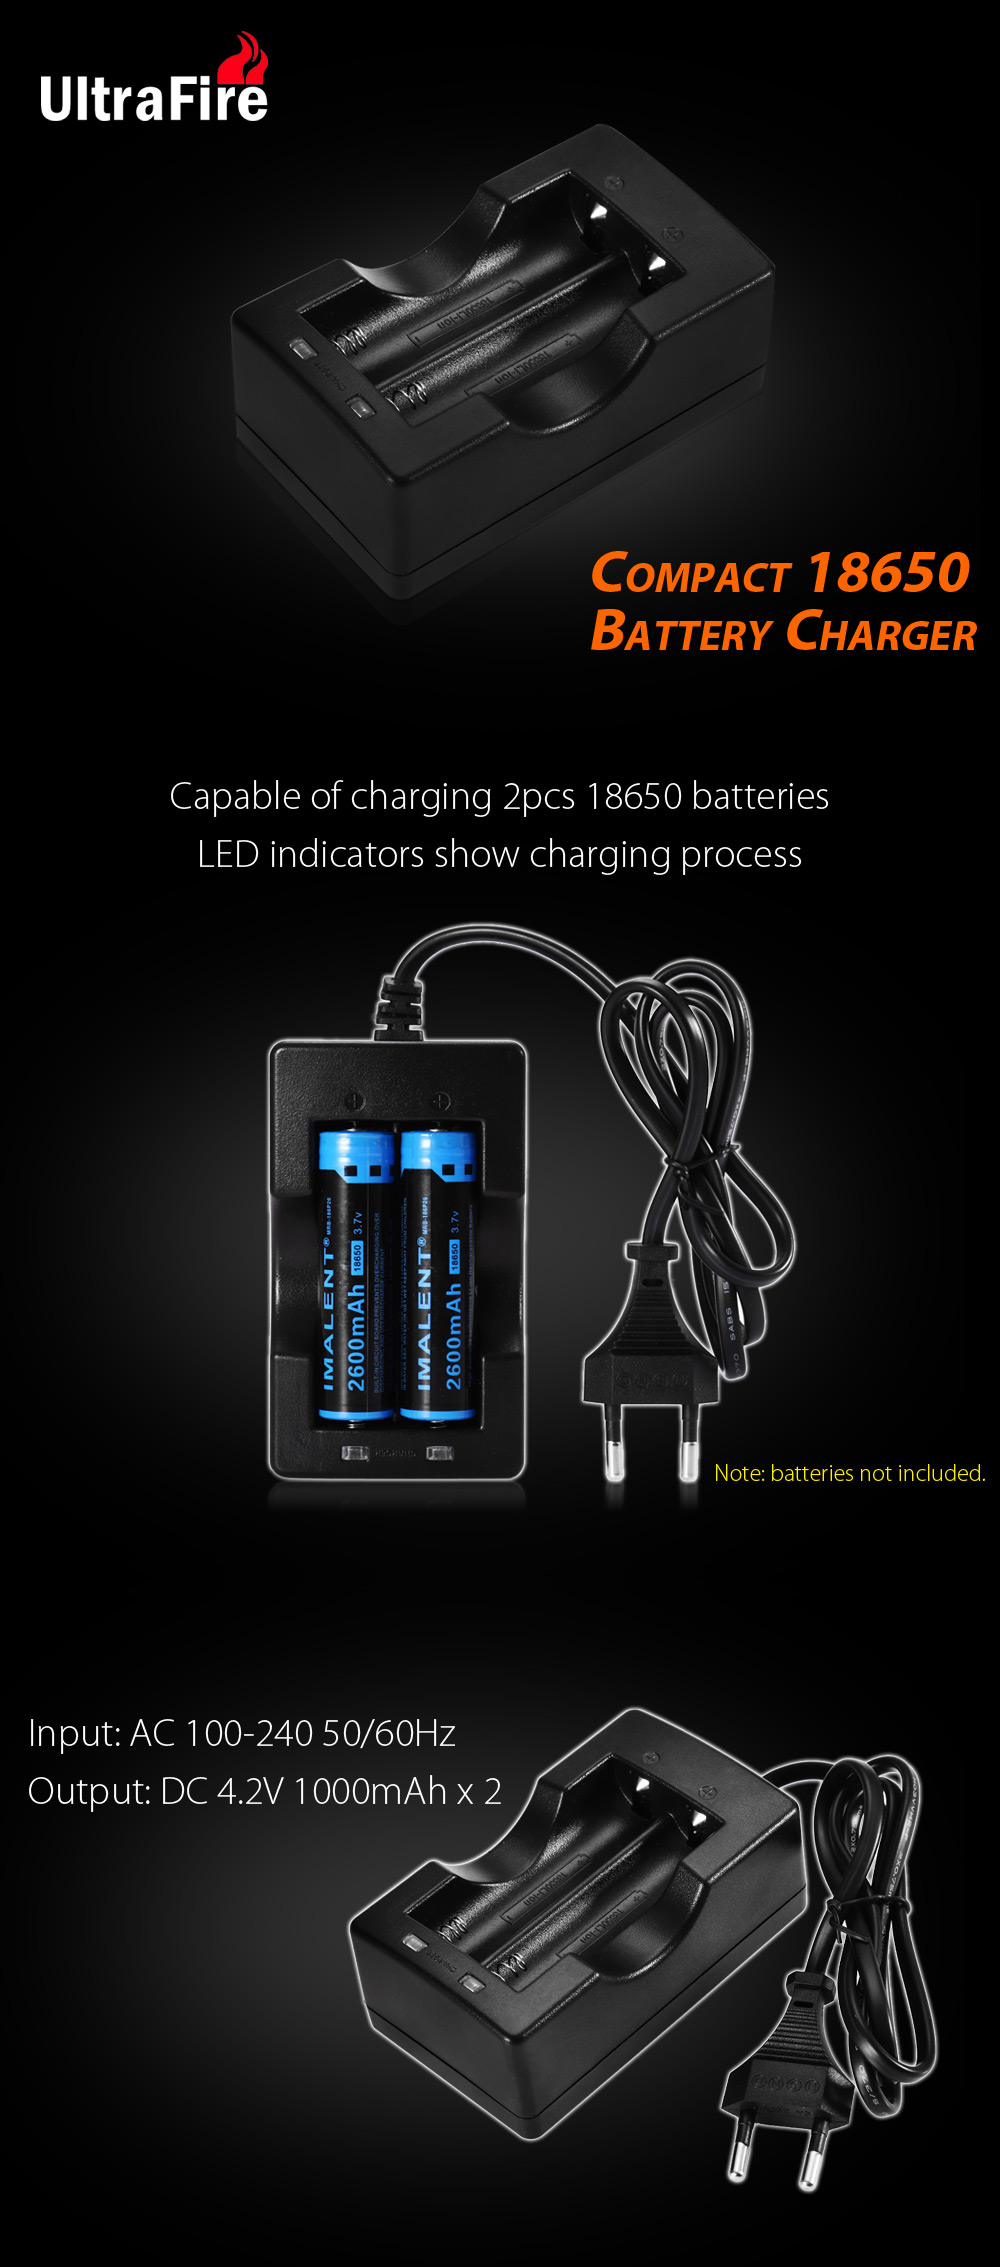 Ultrafire 18650 Li Ion Battery Charger 458 Free Shipping Box 1x Case Single Holder Power Bank Batt Laptop Package Contents 1 X